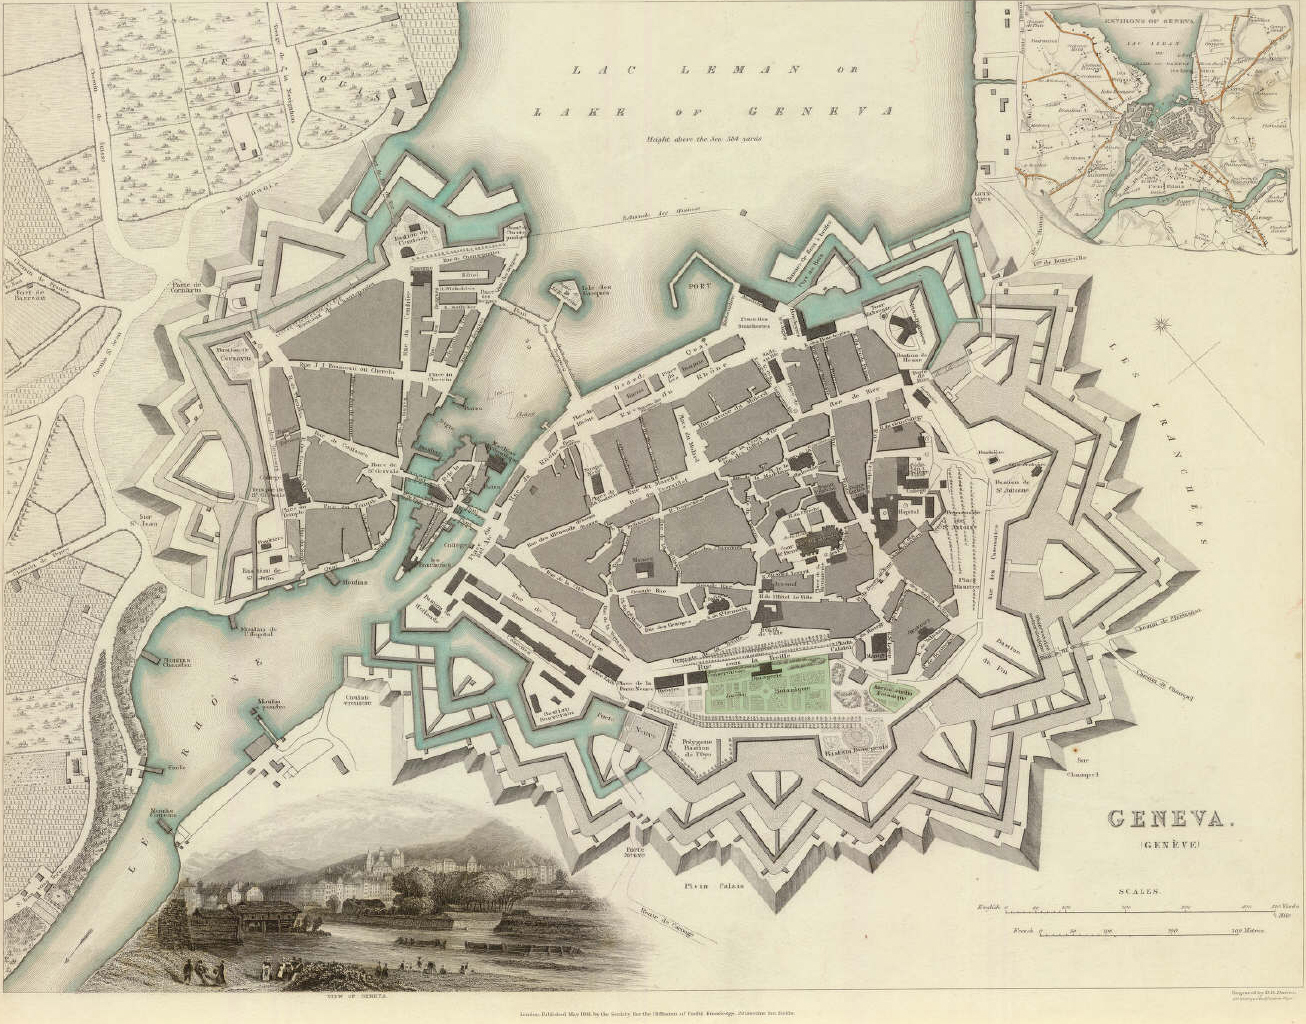 https://upload.wikimedia.org/wikipedia/commons/b/b3/Map_of_Geneva_in_1841.jpg